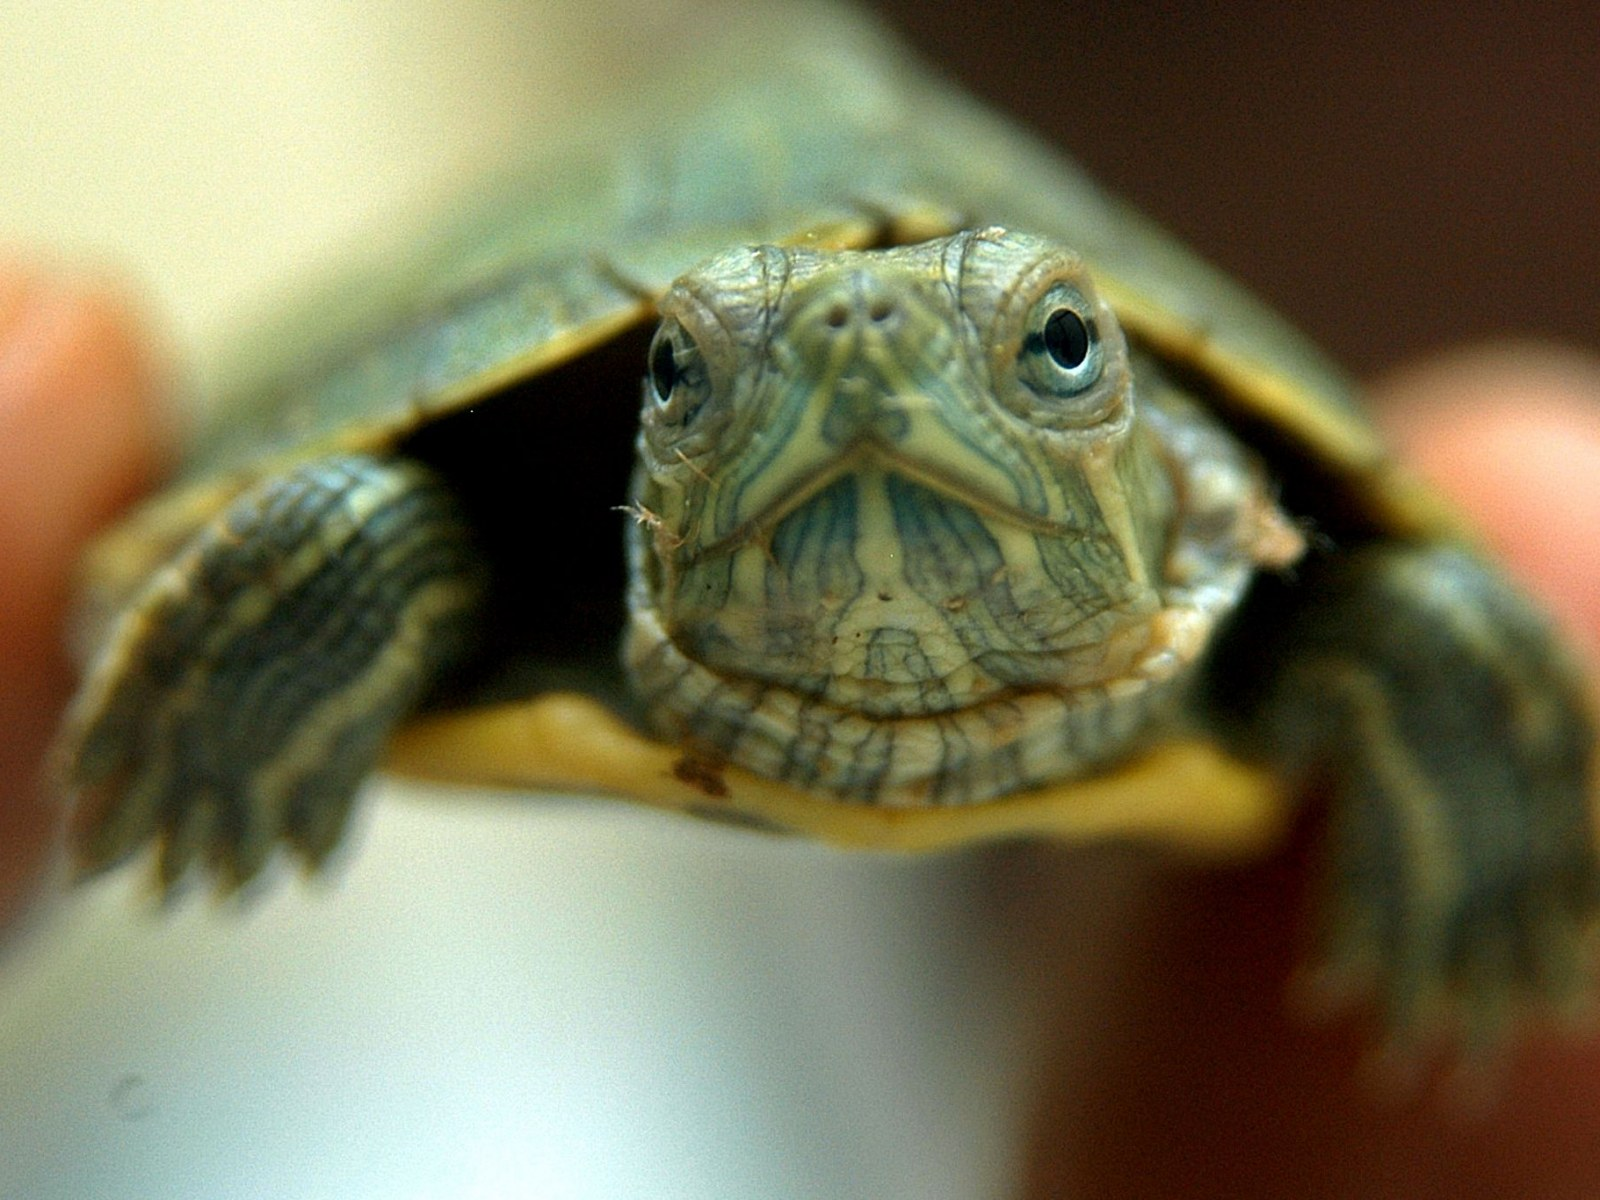 Illegal Traders Have Turned Baby Red Eared Sliders Into A Health And Environmental Threat